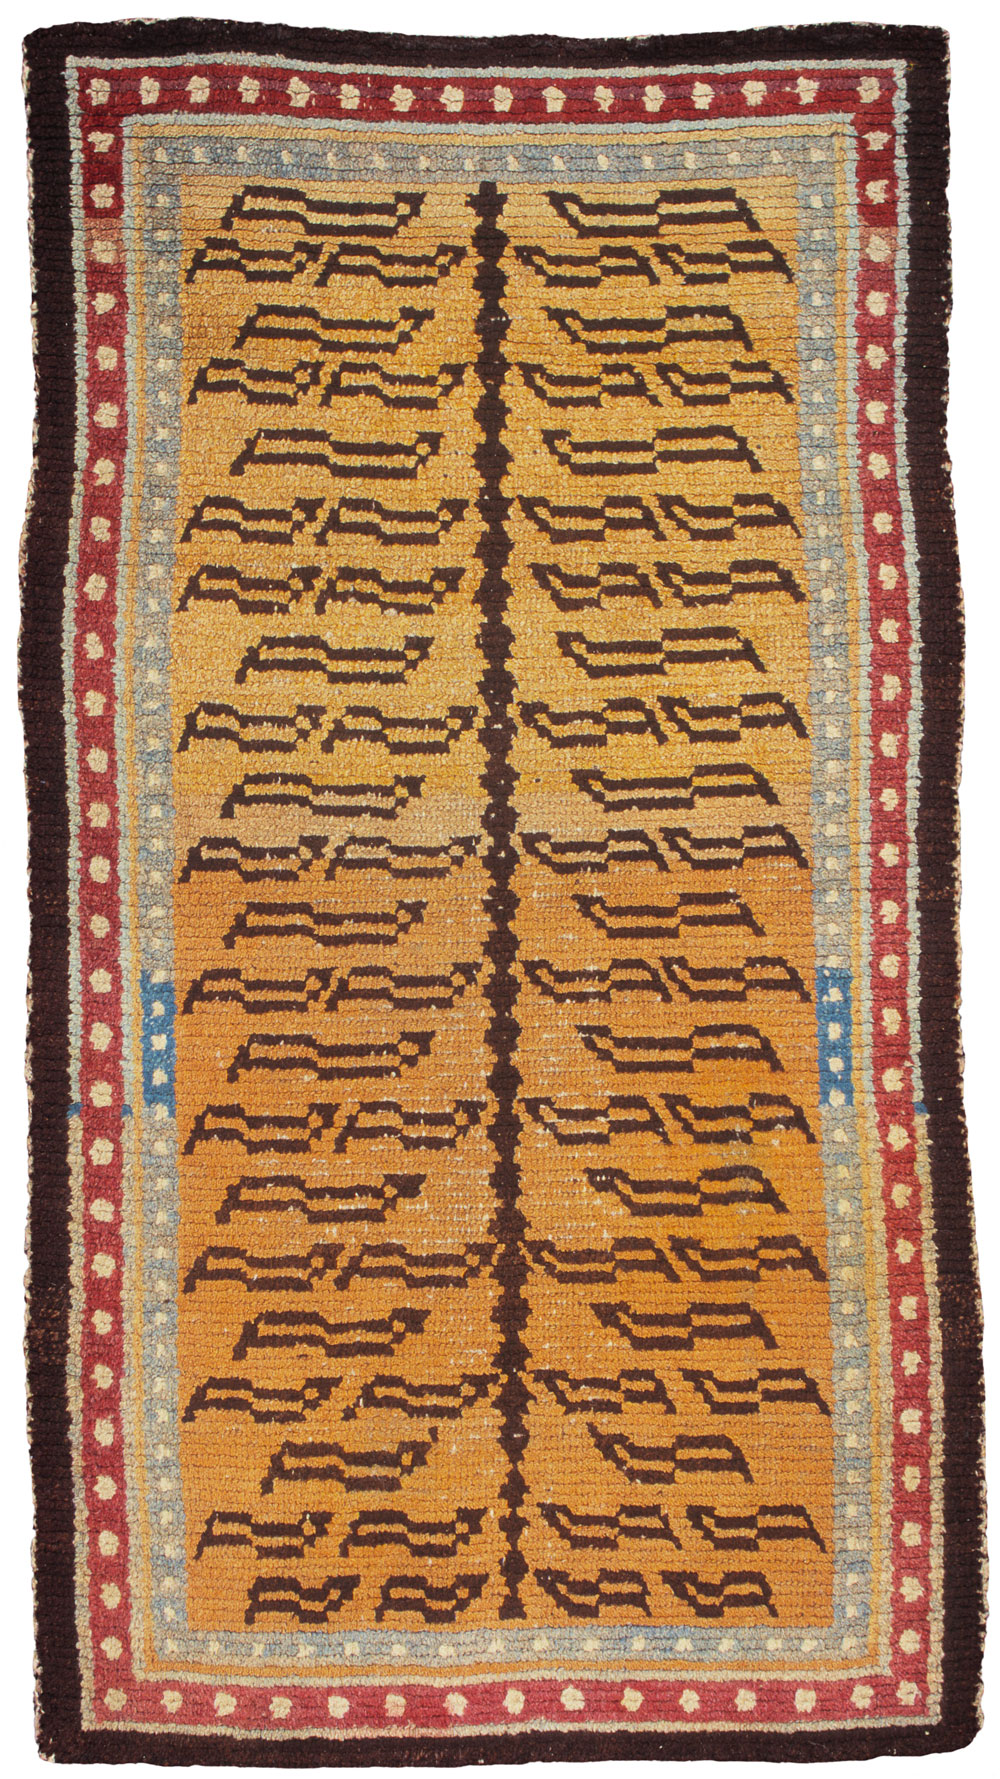 Tibetan rugs at Cologne Fine Art 2014, Tiger Rug with double pearl border, 19th century, 137 x 78 cm